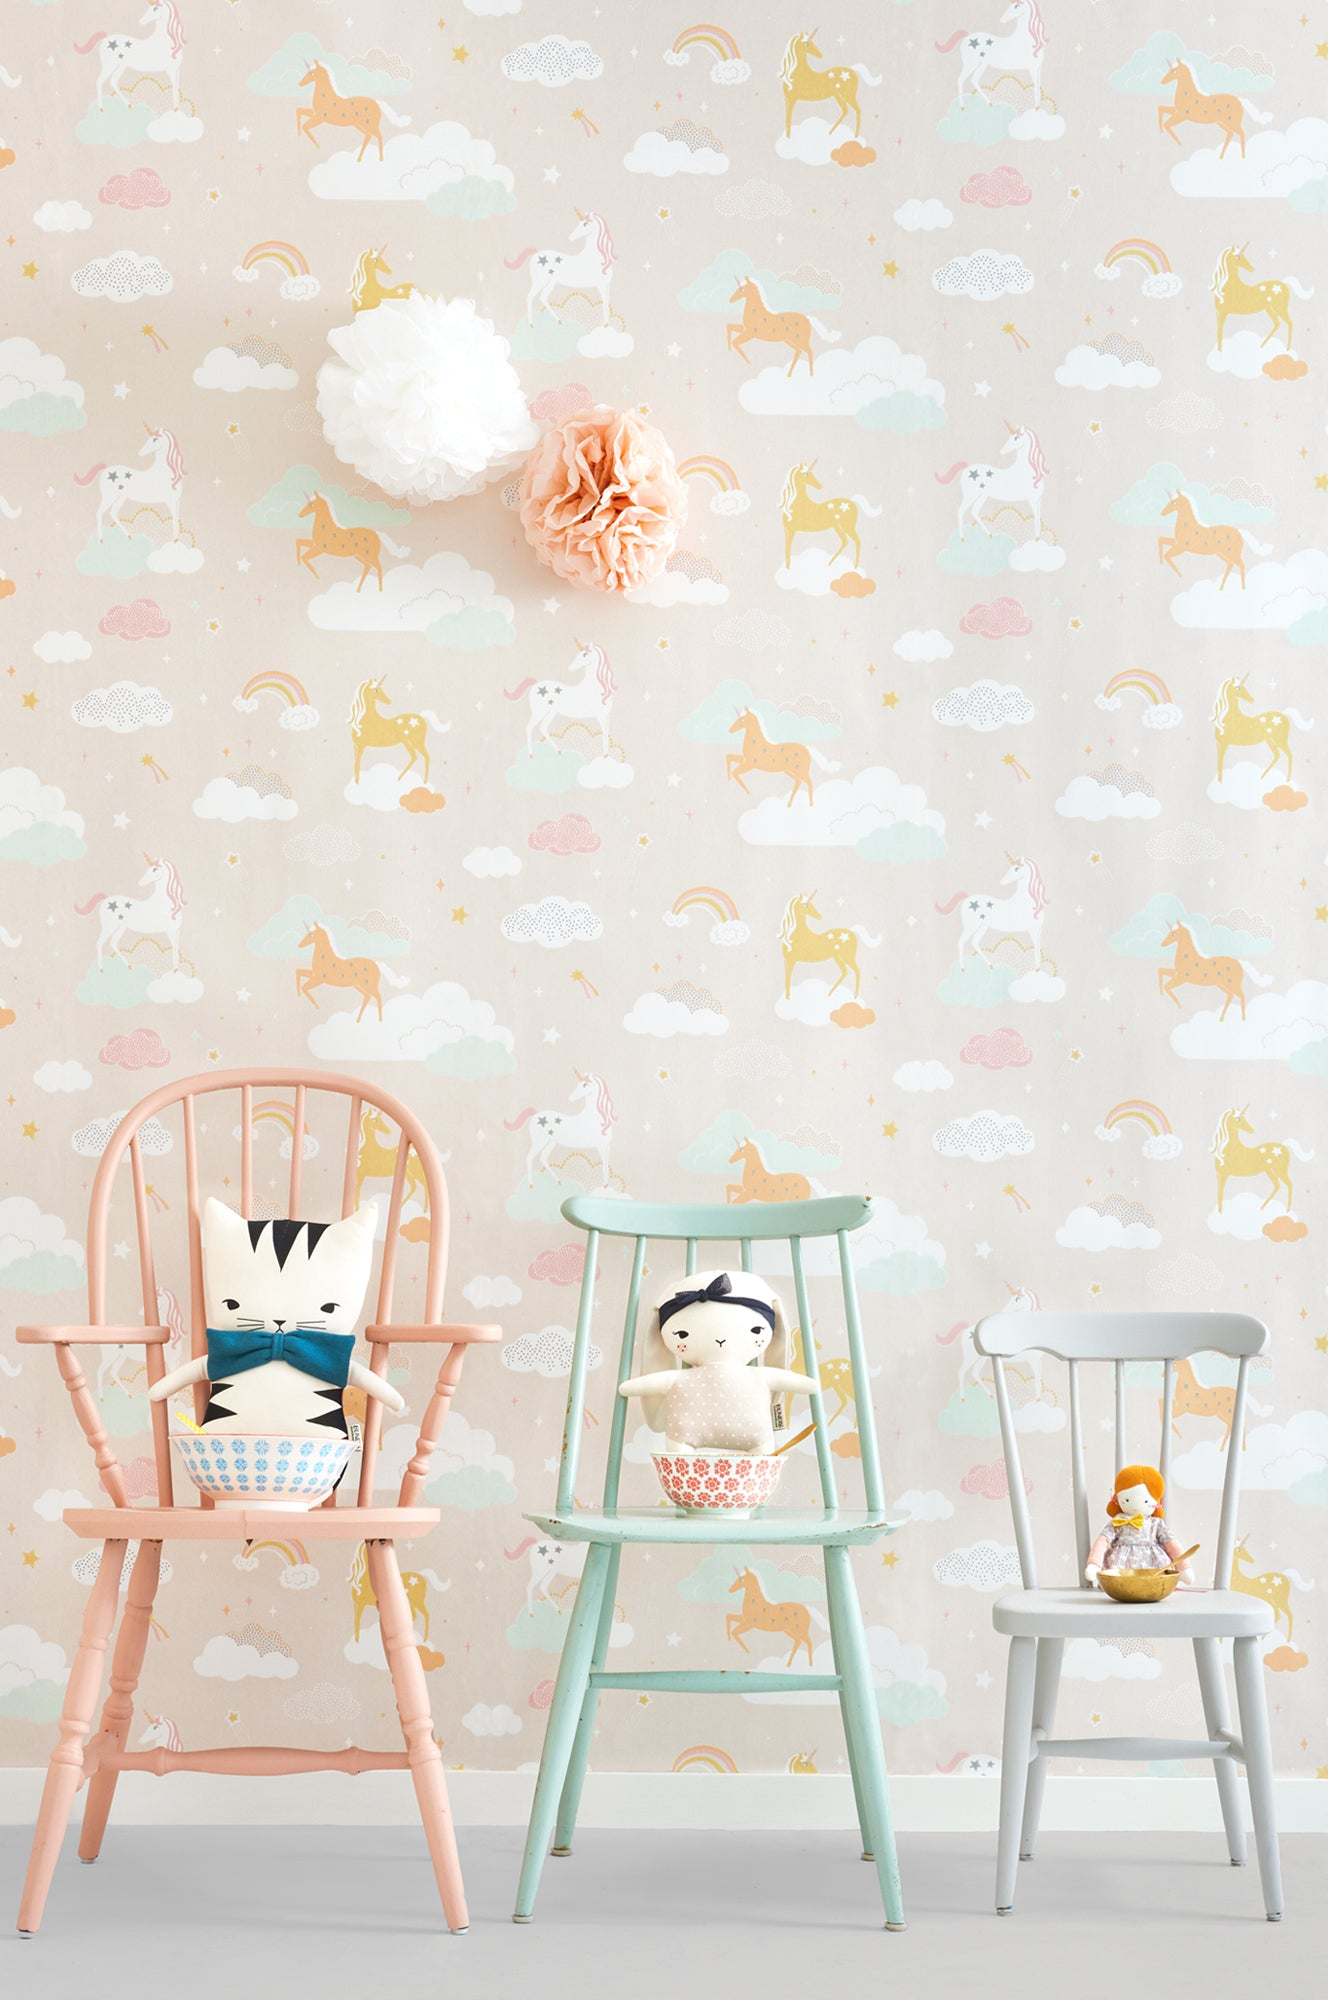 Majvillan children's wallpaper 'Rainbow Treasures', available at Bobby Rabbit.